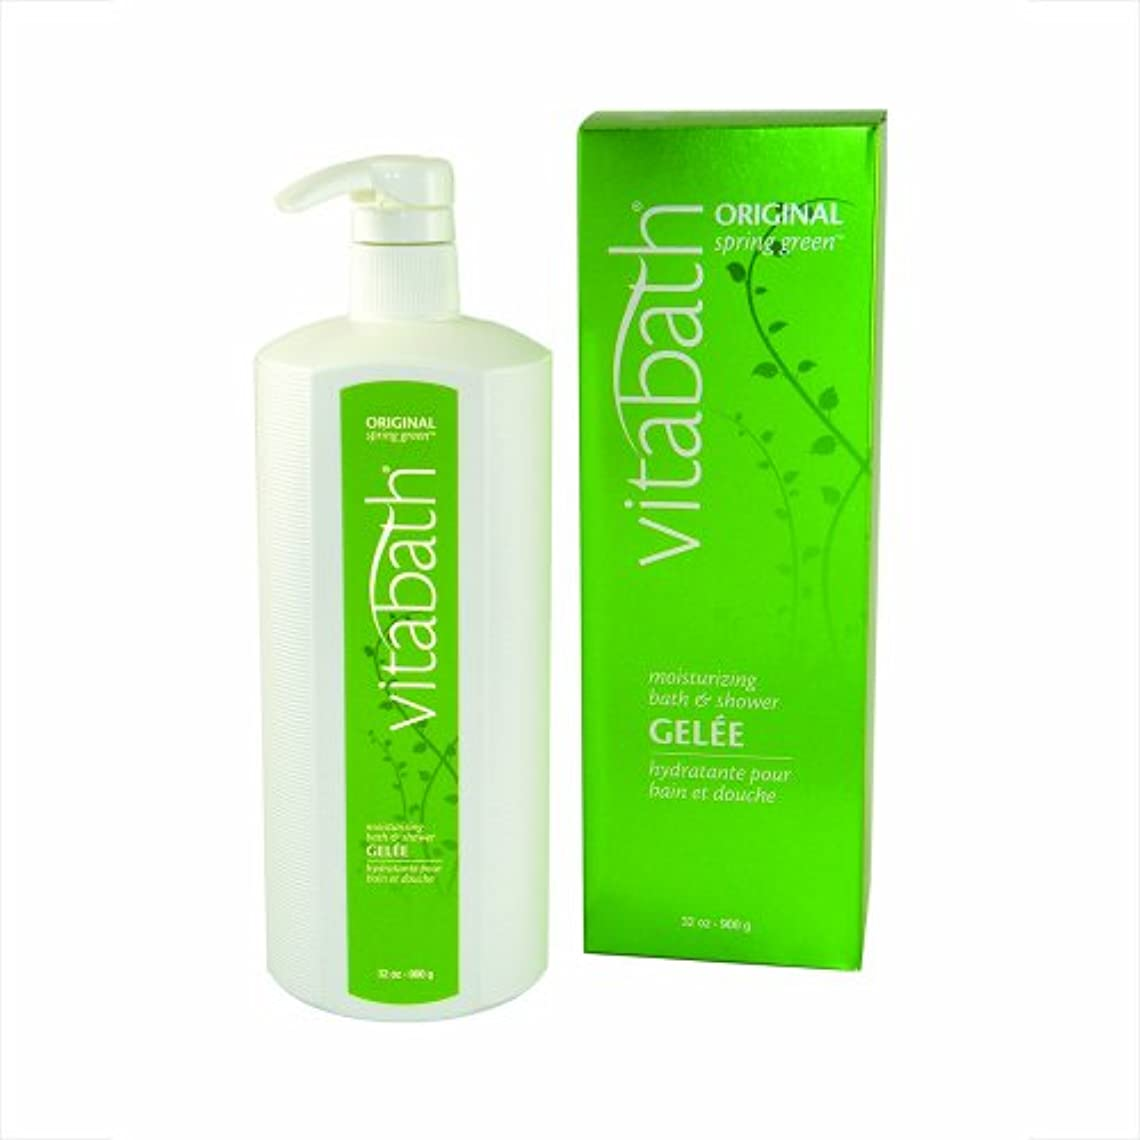 キャストラップブリッジVitabath Original Spring Green Moisturizing Bath & Shower Gelee 32 oz bath gel by Vitabath